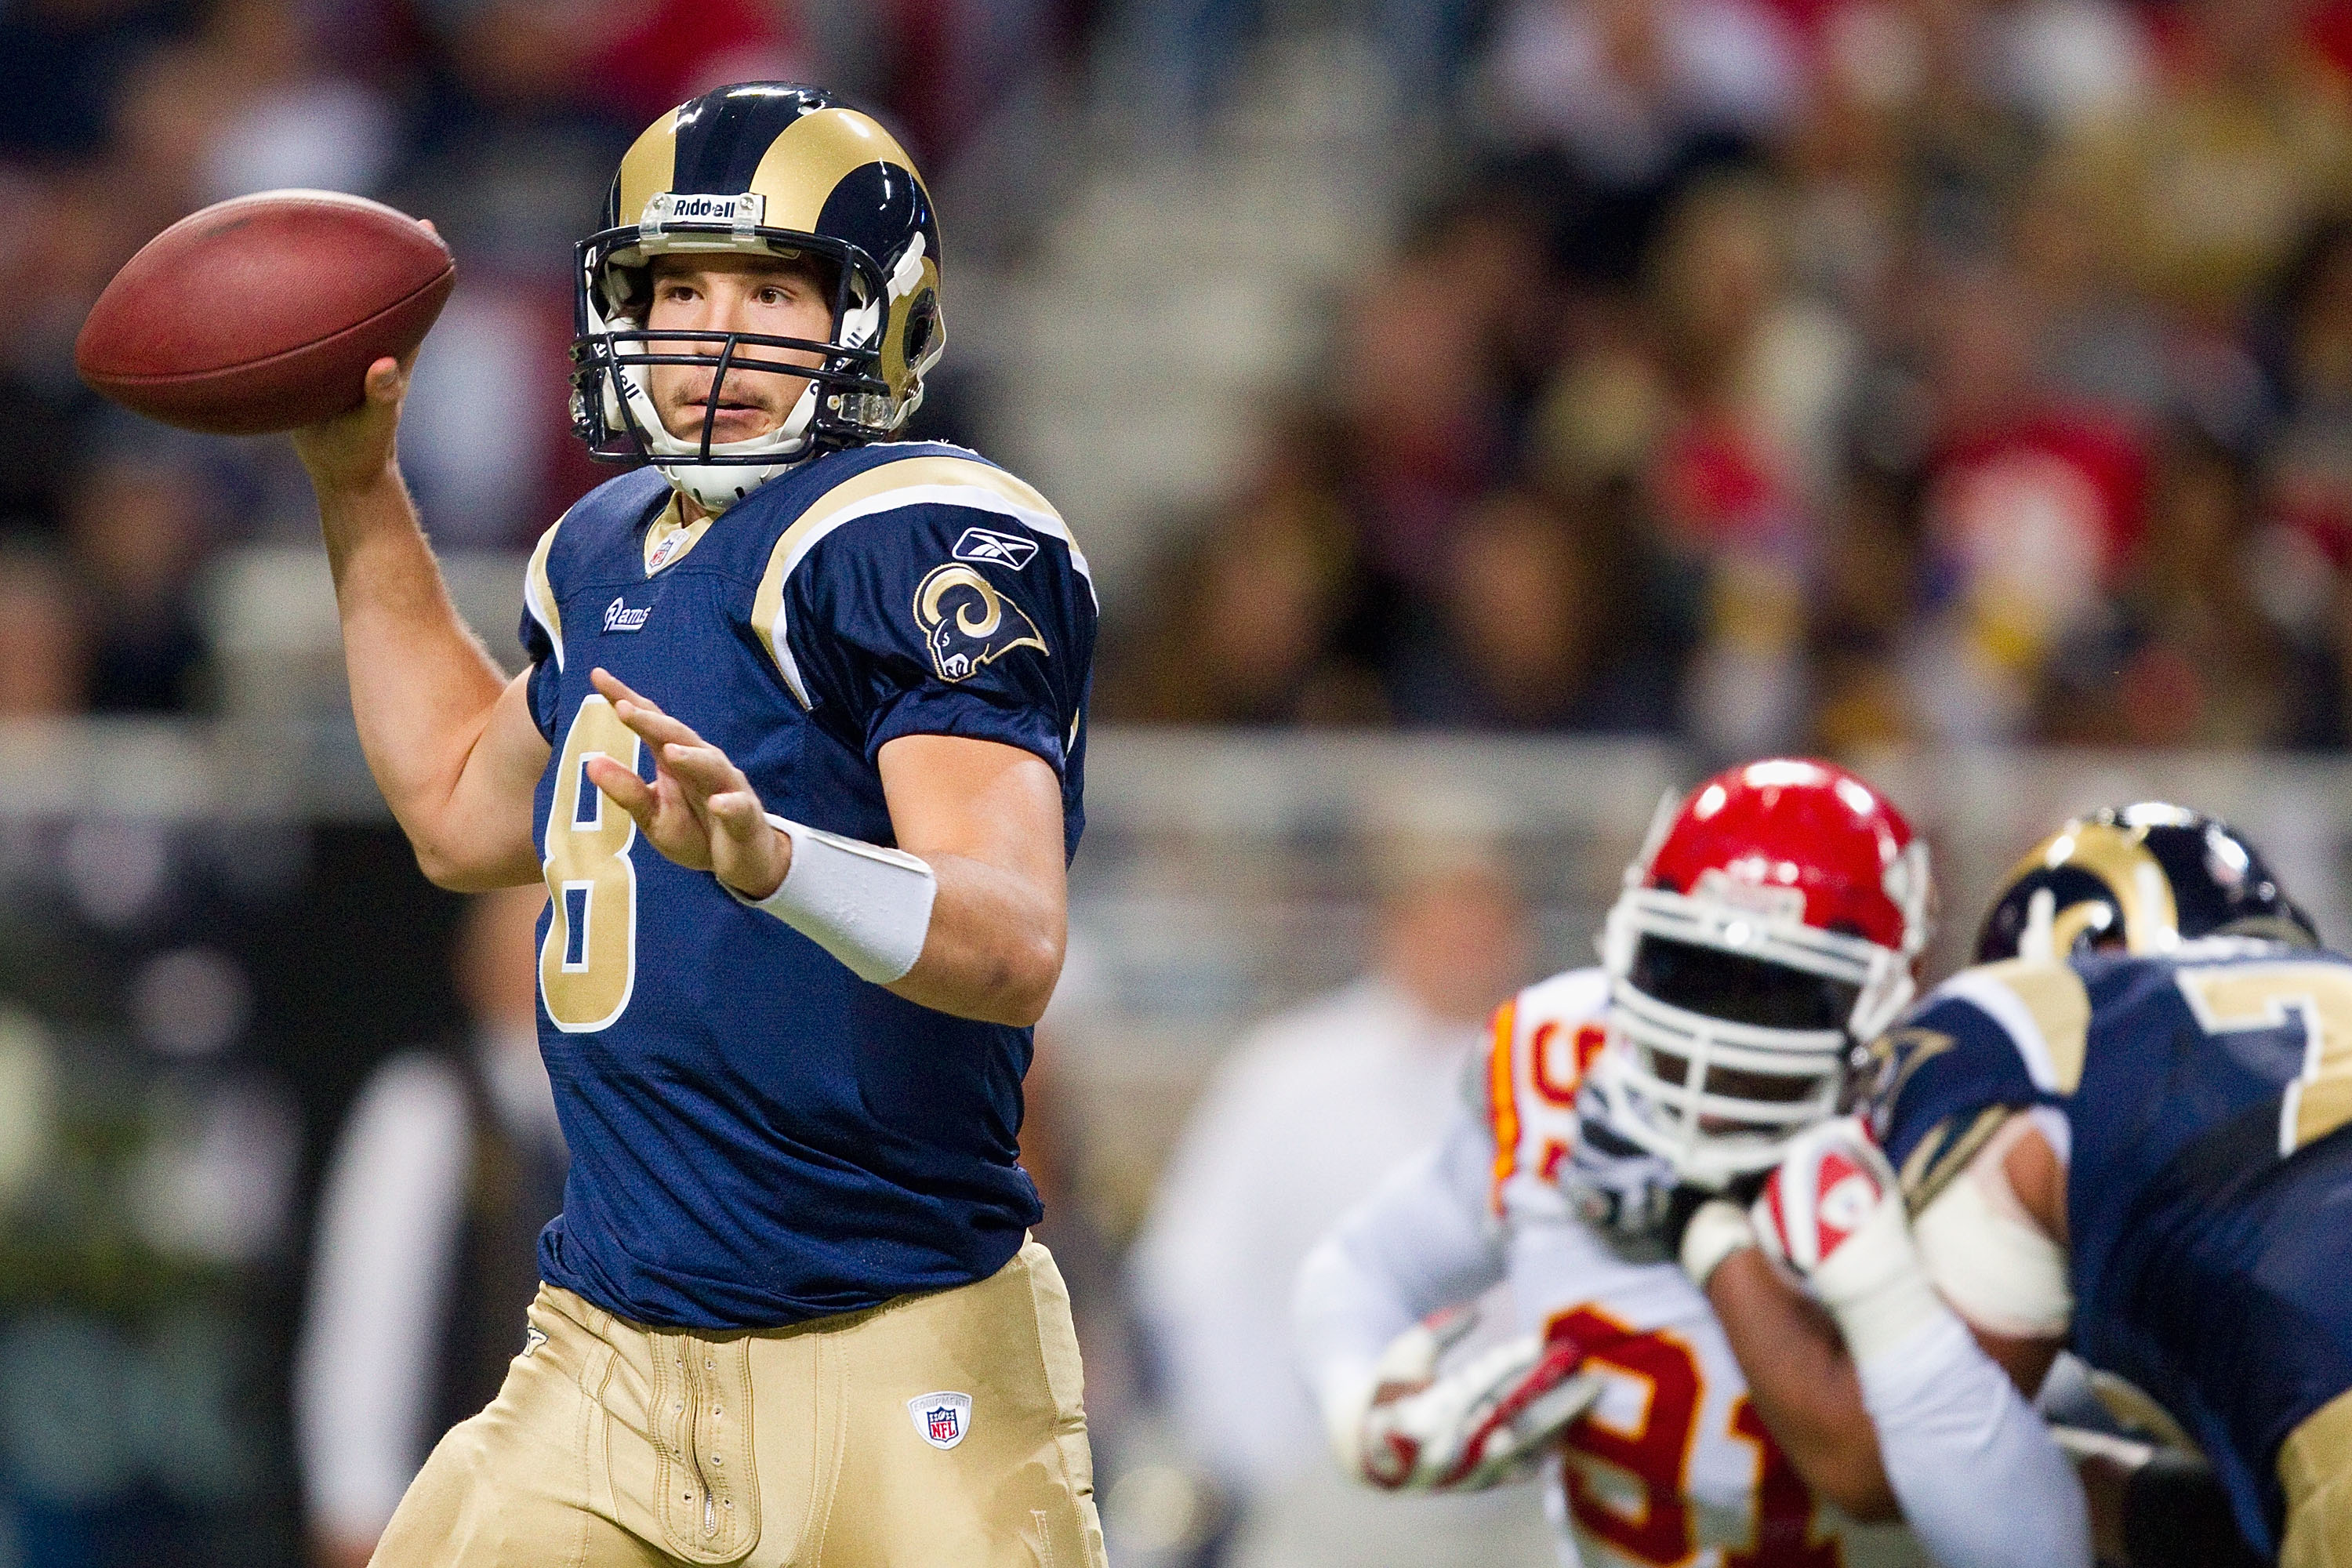 ST. LOUIS, MO - DECEMBER 19: Sam Bradford #8 of the St. Louis Rams passes against the Kansas City Chiefs at the Edward Jones Dome on December 19, 2010 in St. Louis, Missouri.  The Chiefs beat the Rams 27-13.  (Photo by Dilip Vishwanat/Getty Images)